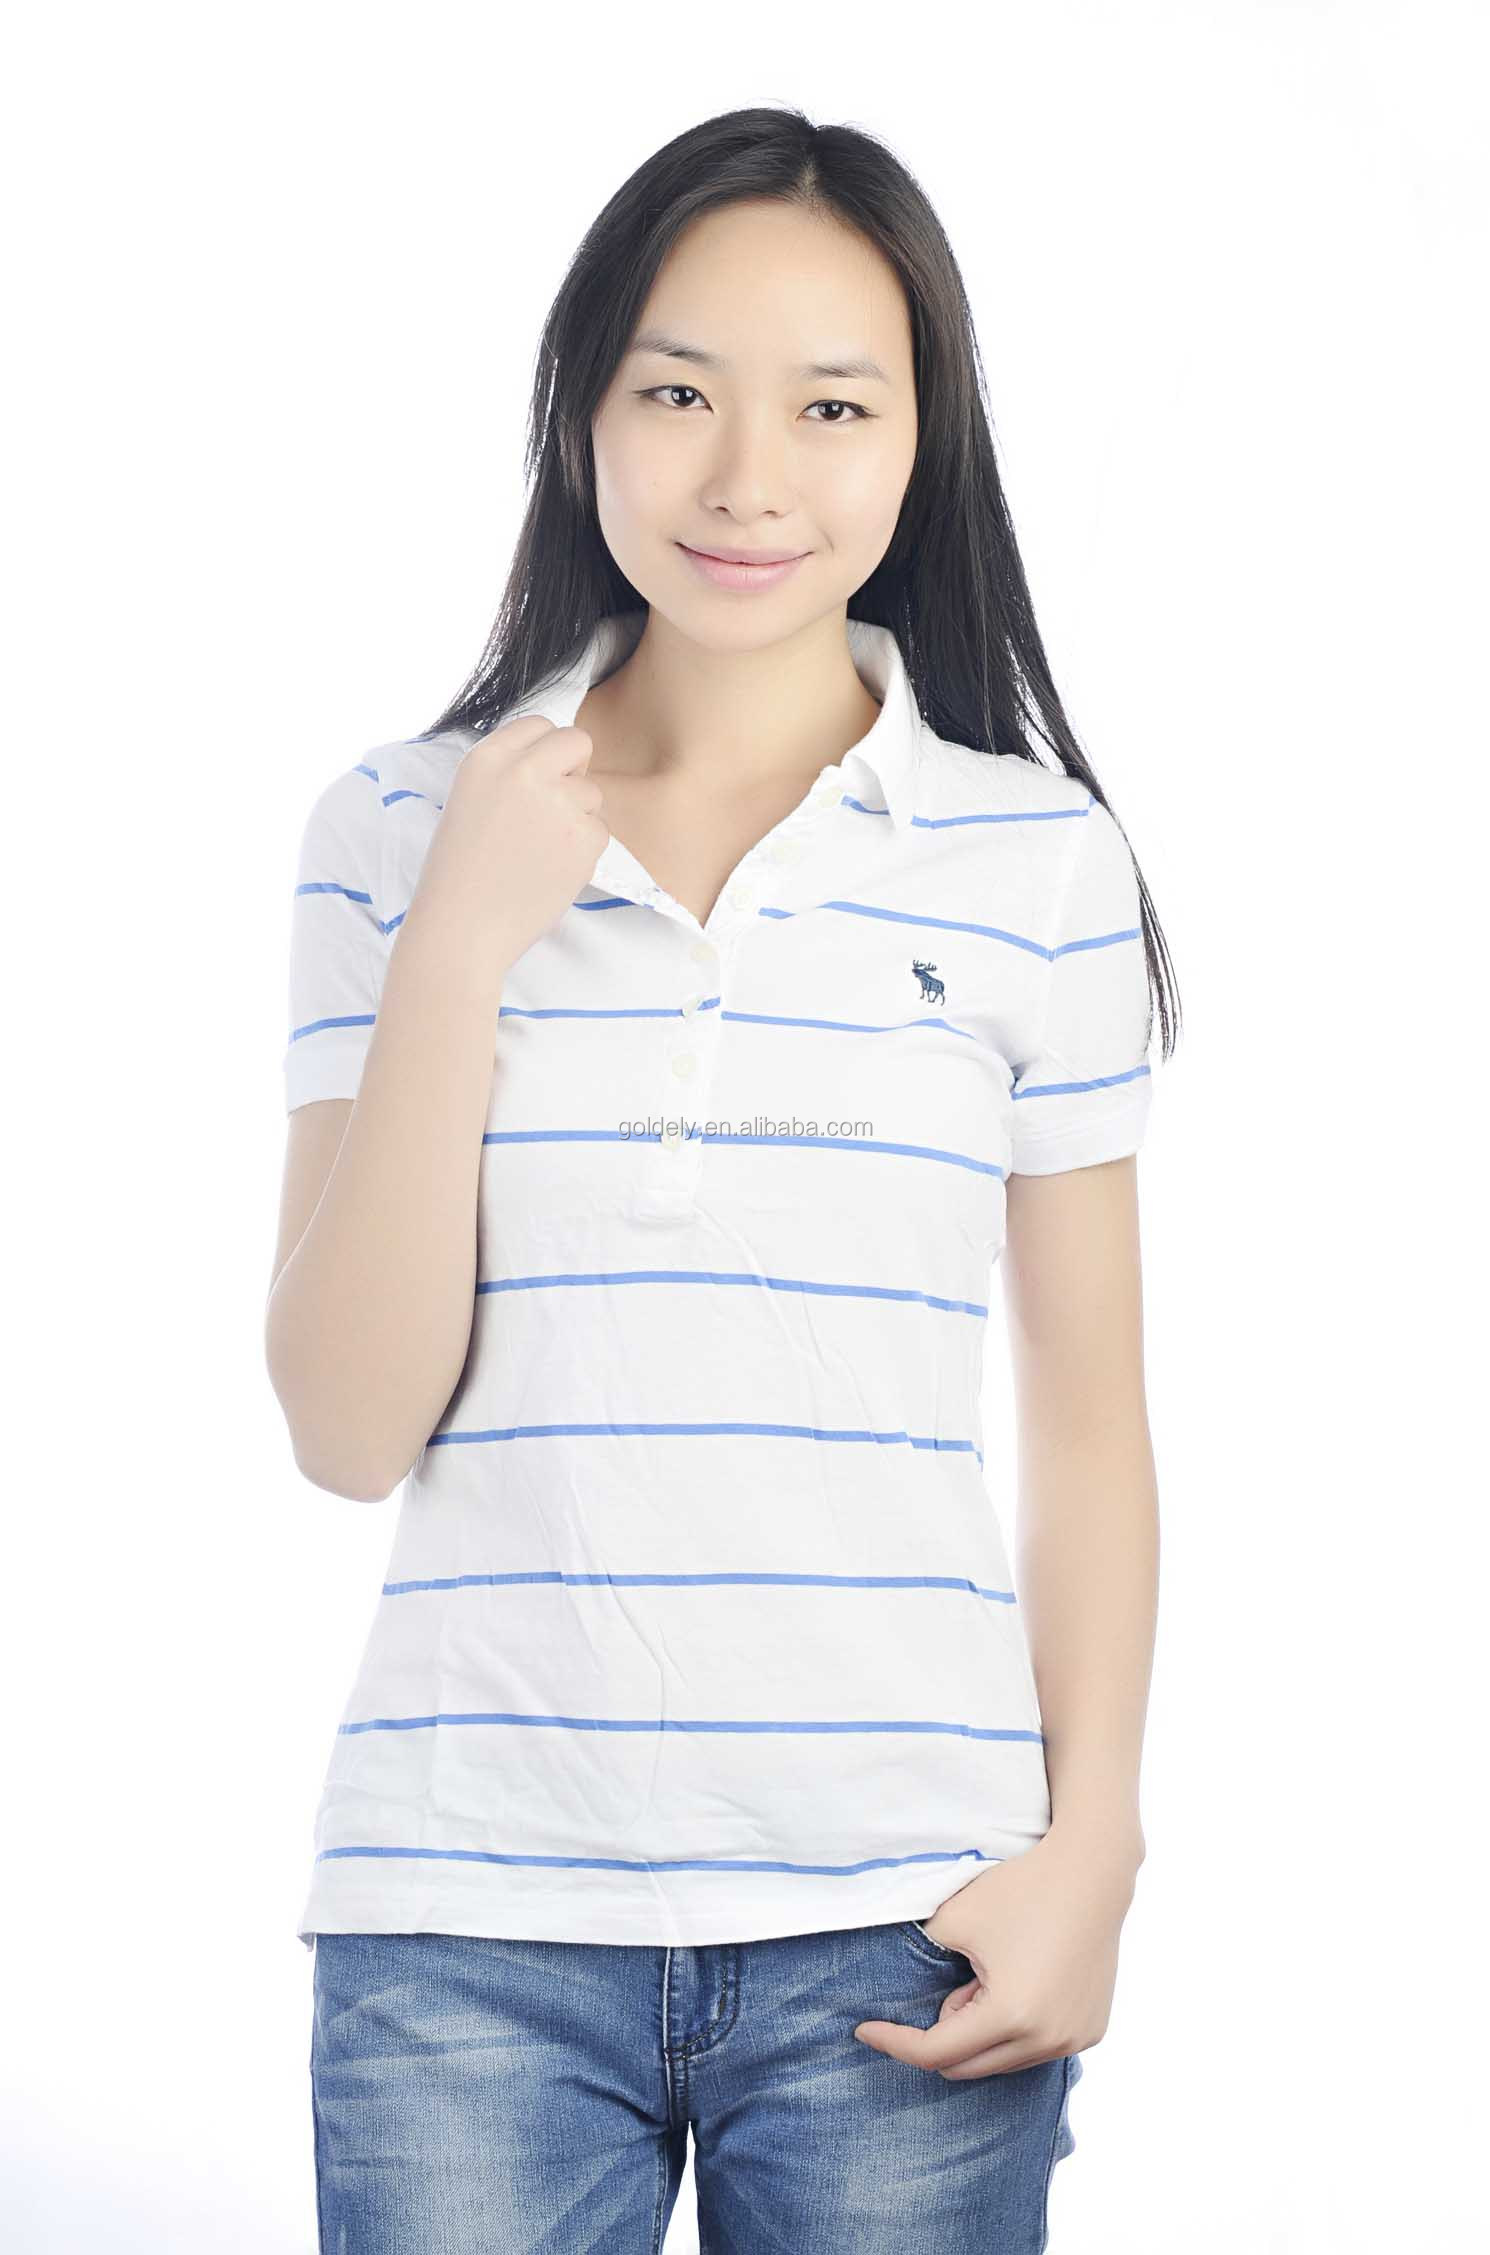 dc548293 Hot sale women striped polo t shirt casual fashion polo shirts cheap price  white blue striped